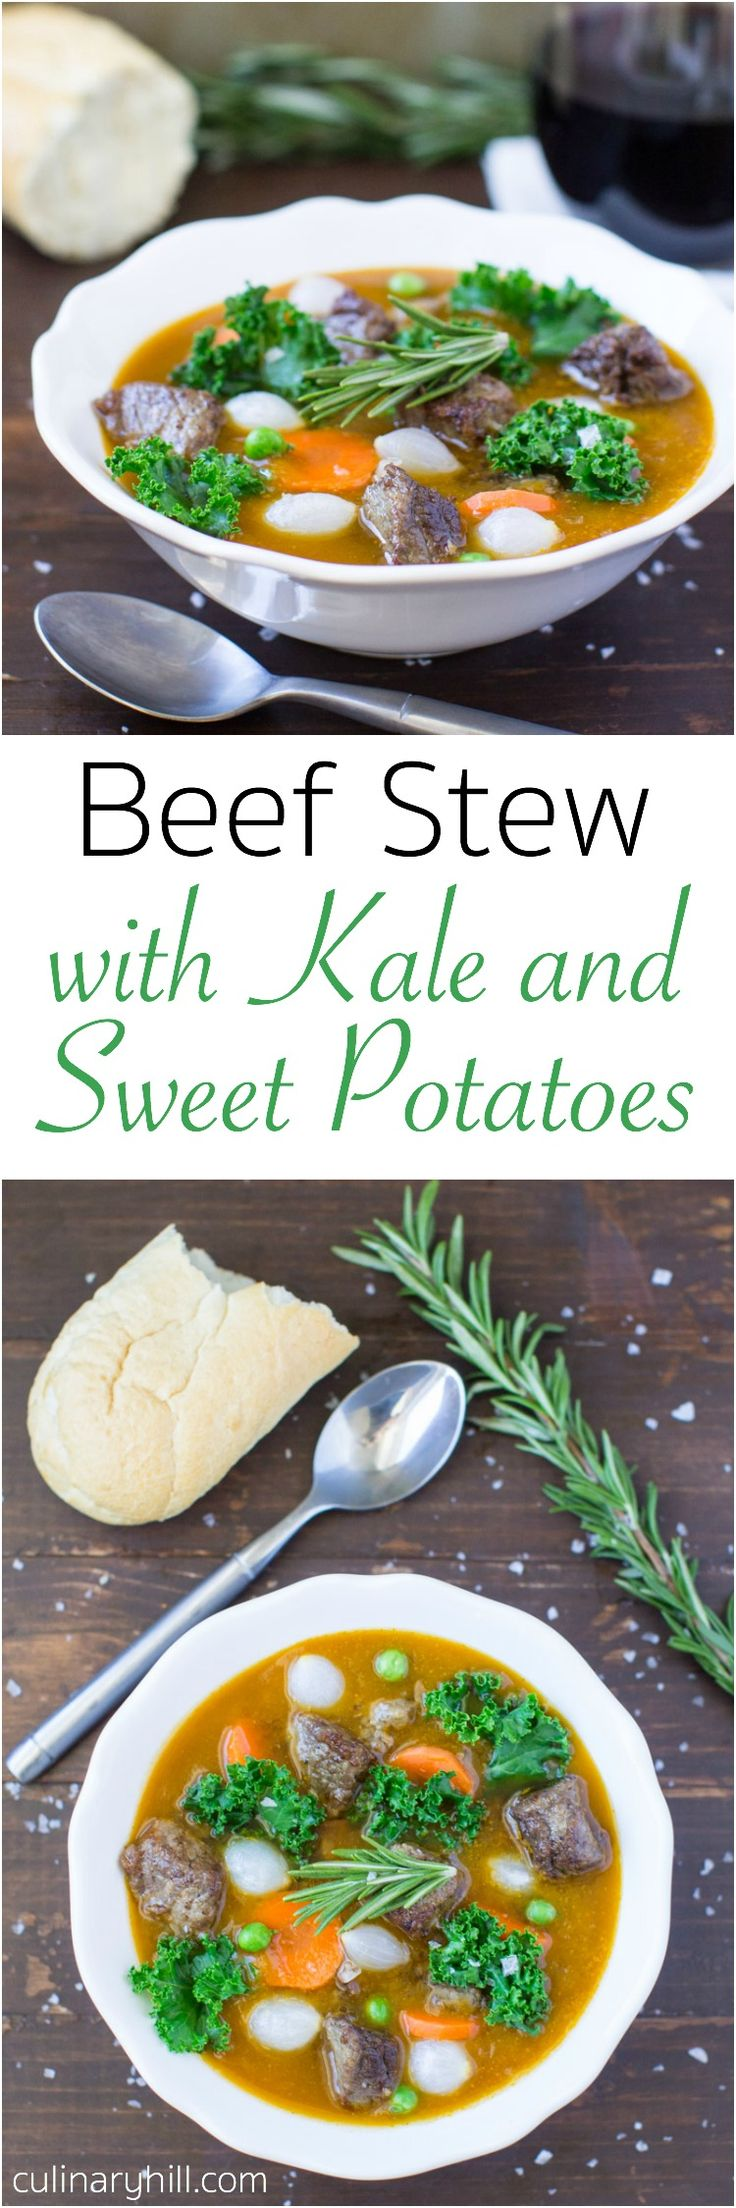 Beef Stew is upgraded to premium nutritional status when it's thickened with sweet potatoes, seasoned with fresh rosemary, and loaded with chopped kale.